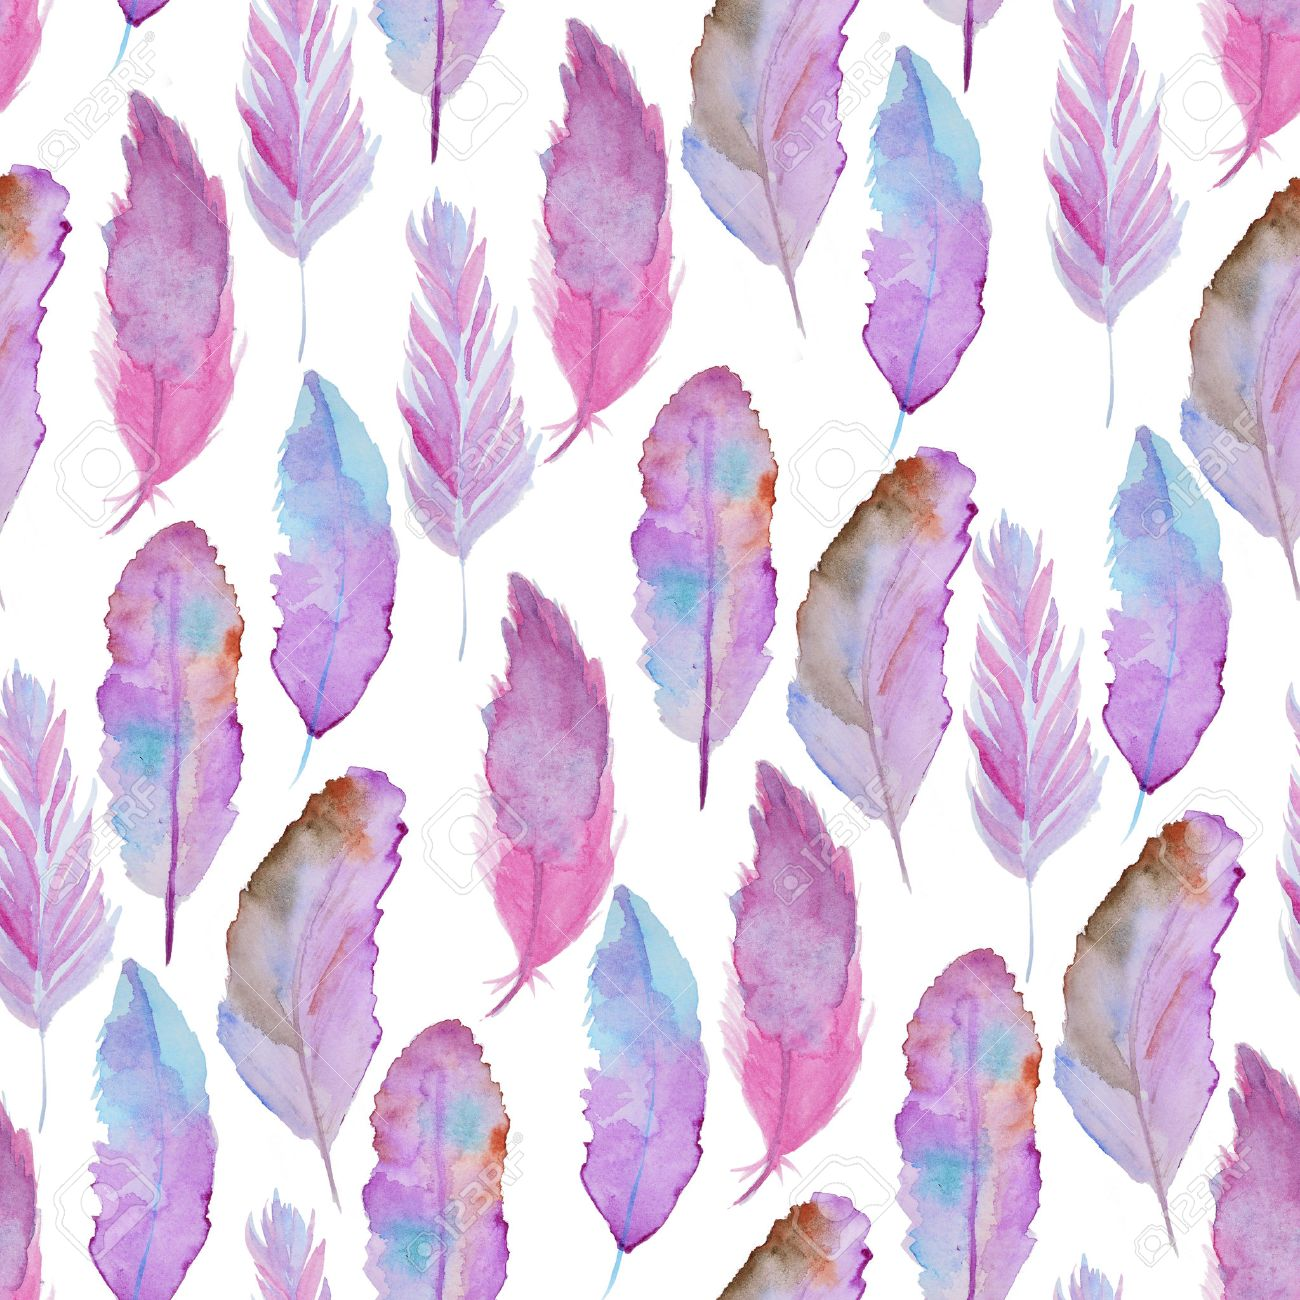 Seamless Watercolor Pattern With Feathers Vintage Paint